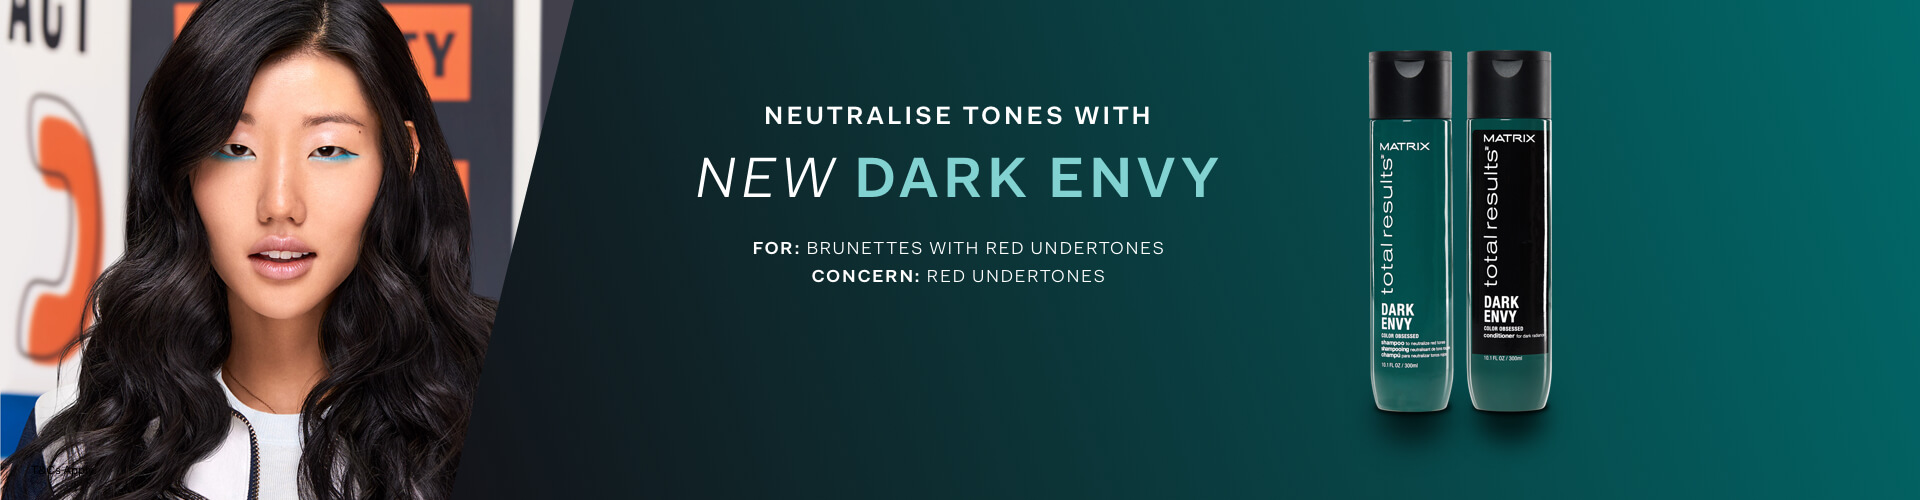 NEUTRALISE TONES WITH NEW DARK ENVY FOR BRUNETTES WITH RED UNDERTONES. Featuring Dark Envy products and model.